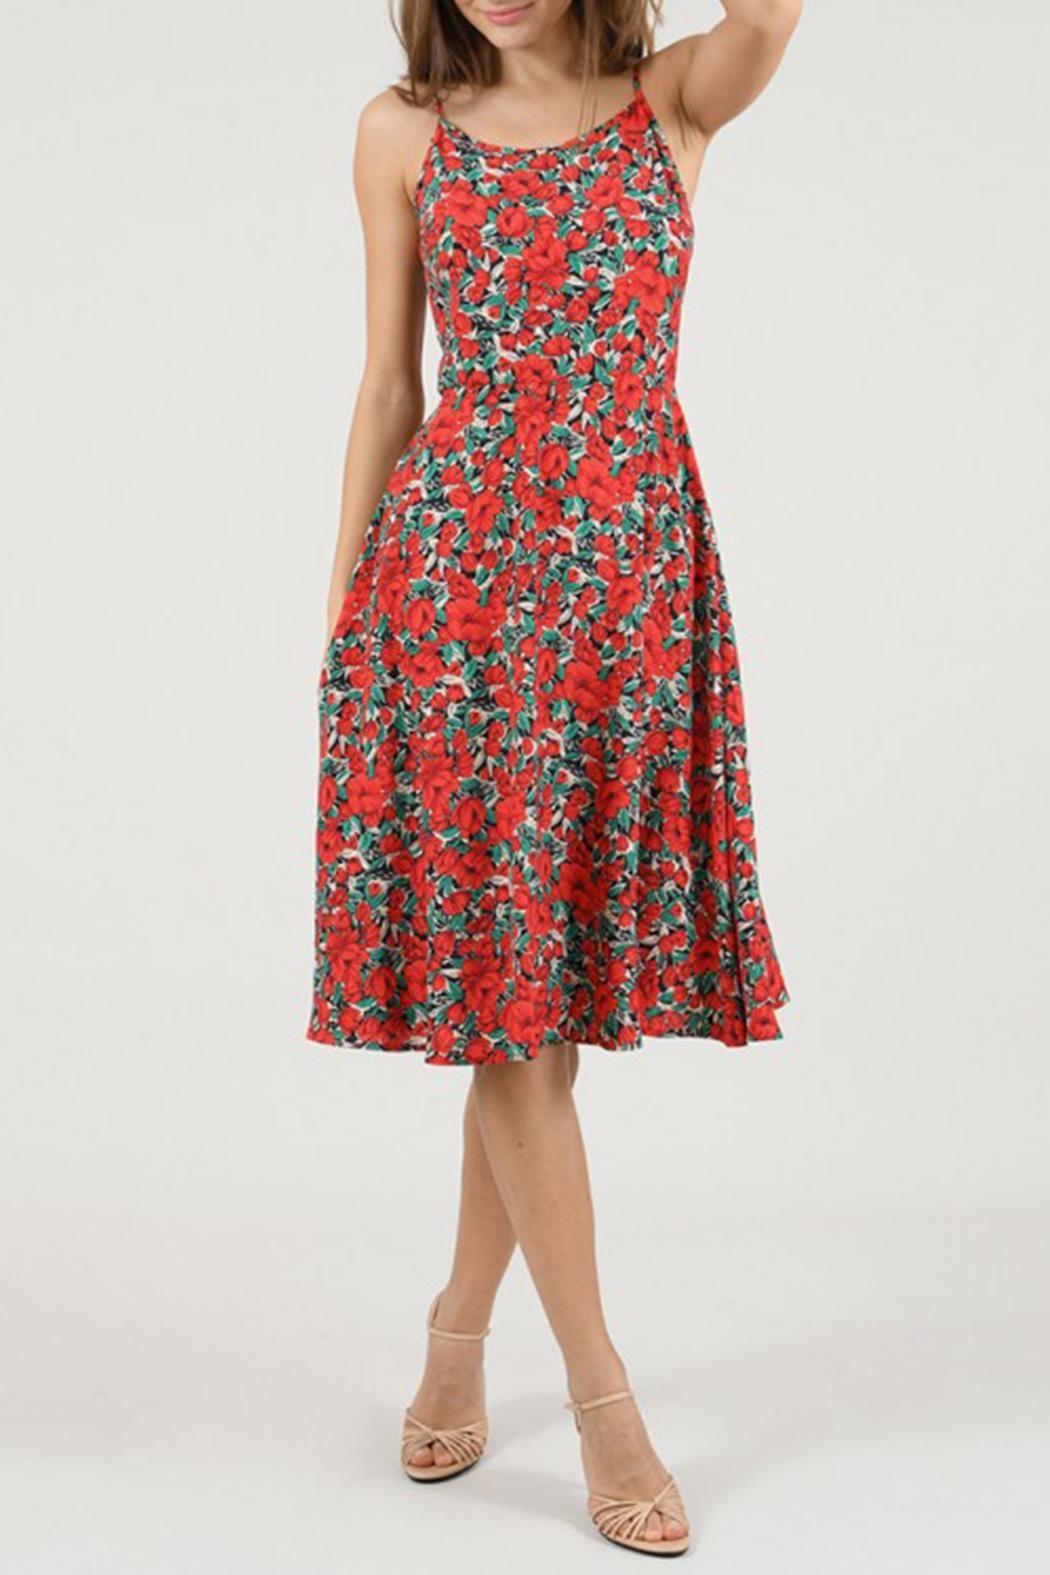 Molly Bracken Floral Dress - Front Full Image